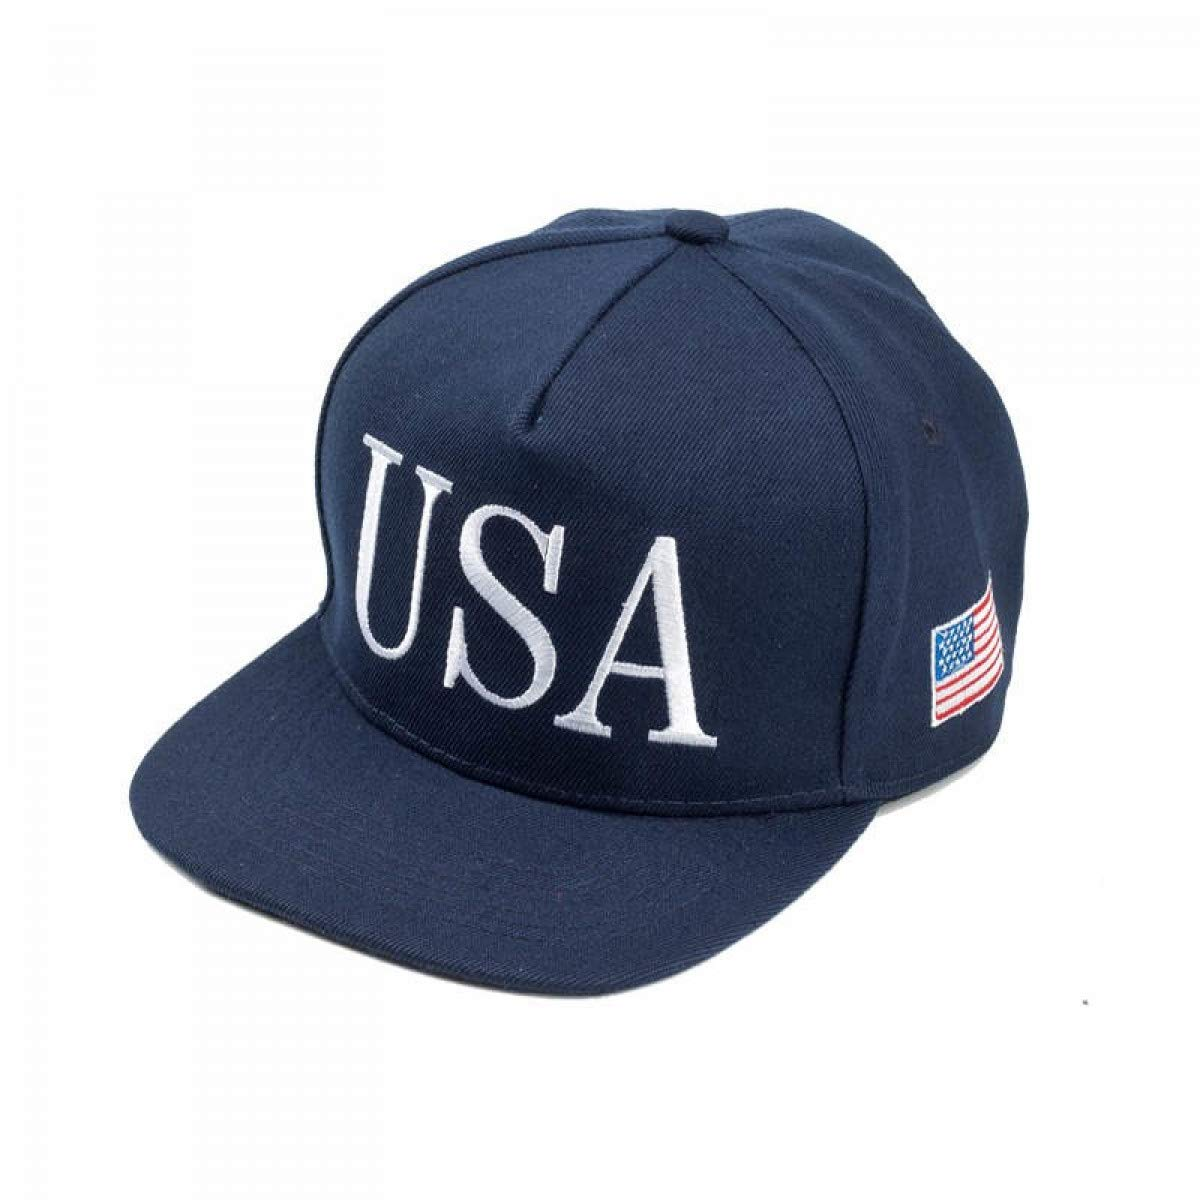 Trump 2020 Caps Make America Great Again Hat Donald Trump Republican USA Cap (Navy) at Amazon Mens Clothing store: